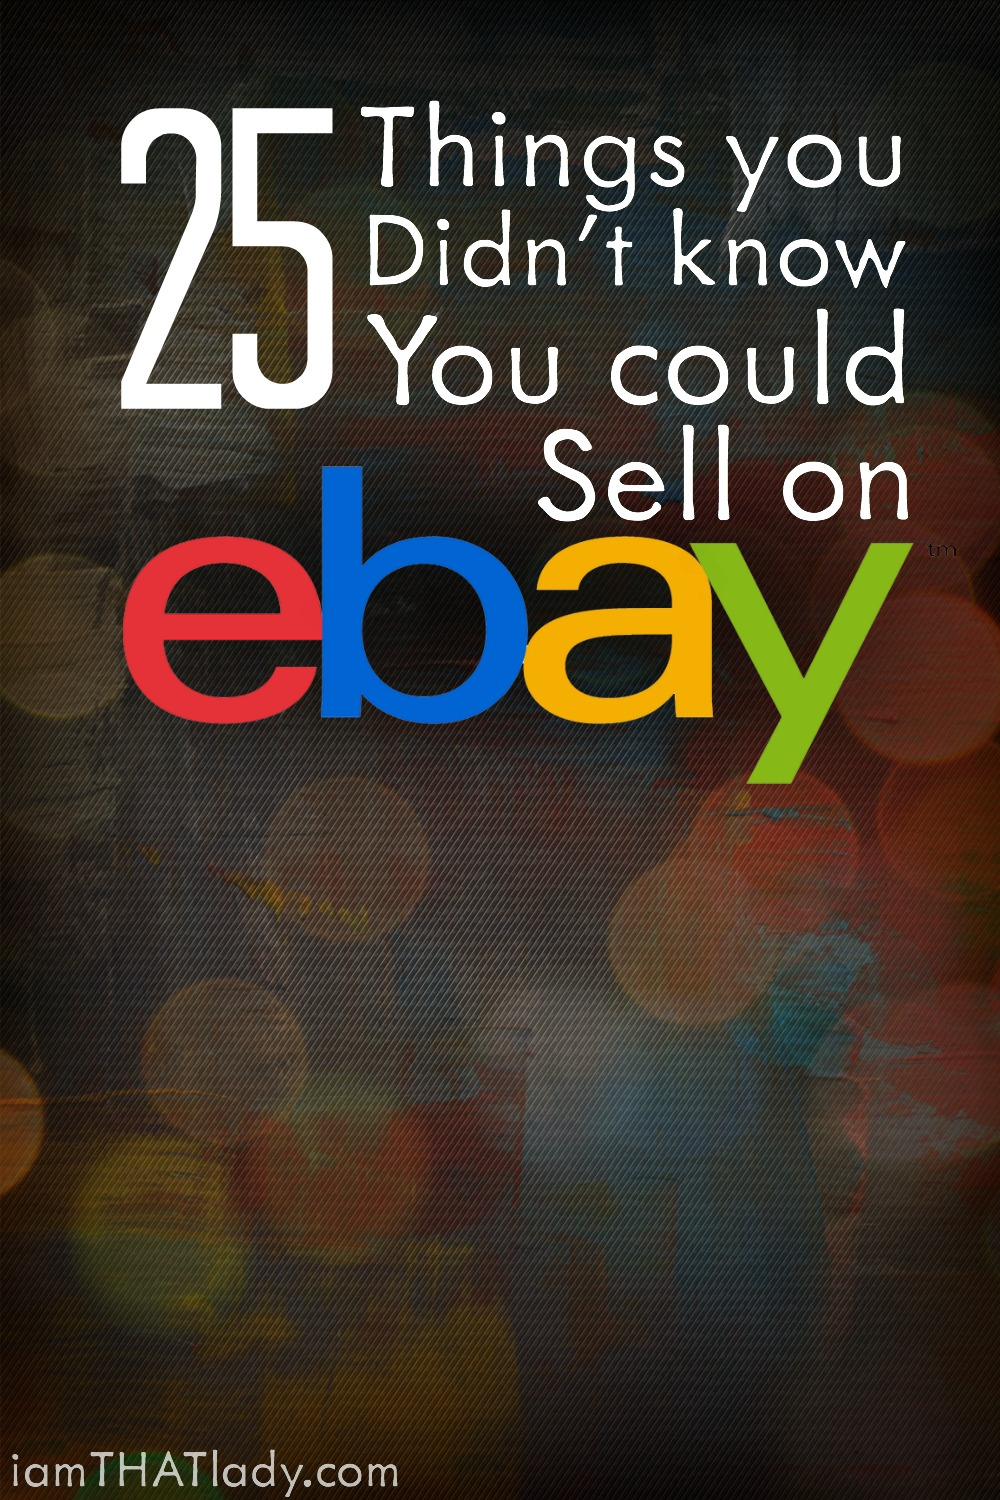 Plush You Will Be Shocked To See That Some Item On This List Can Make Things You Know You Could Sell On Ebay Accepting A Second Chance Offer On Ebay What Is Make A Second Chance Offer On Ebay dpreview What Is A Second Chance Offer On Ebay